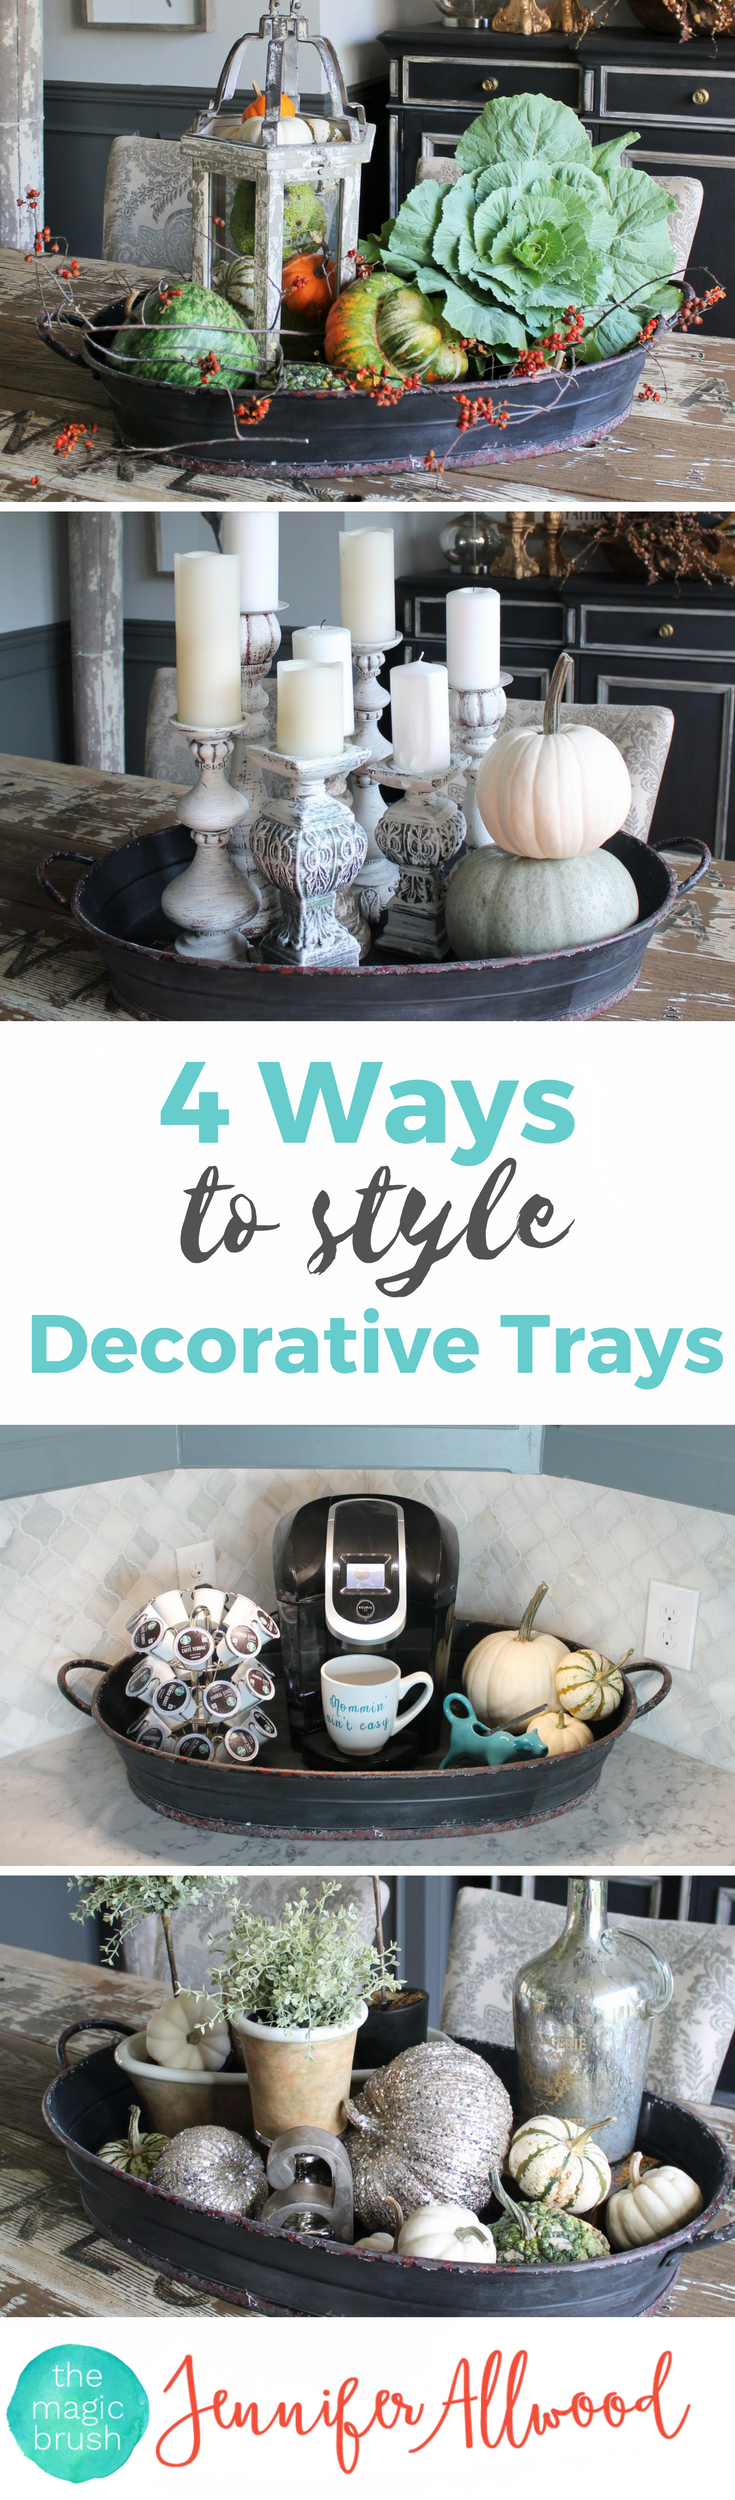 How to's : 4 Ways to style Decorative Trays by Jennifer Allwood of theMagicBrushinc.com Tray Decor is a fun way to decorate for fall and the holidays, style coffee tables and counters. Just put a cute tray under it and make it table decor! Gorgeous seasonal tray decor.